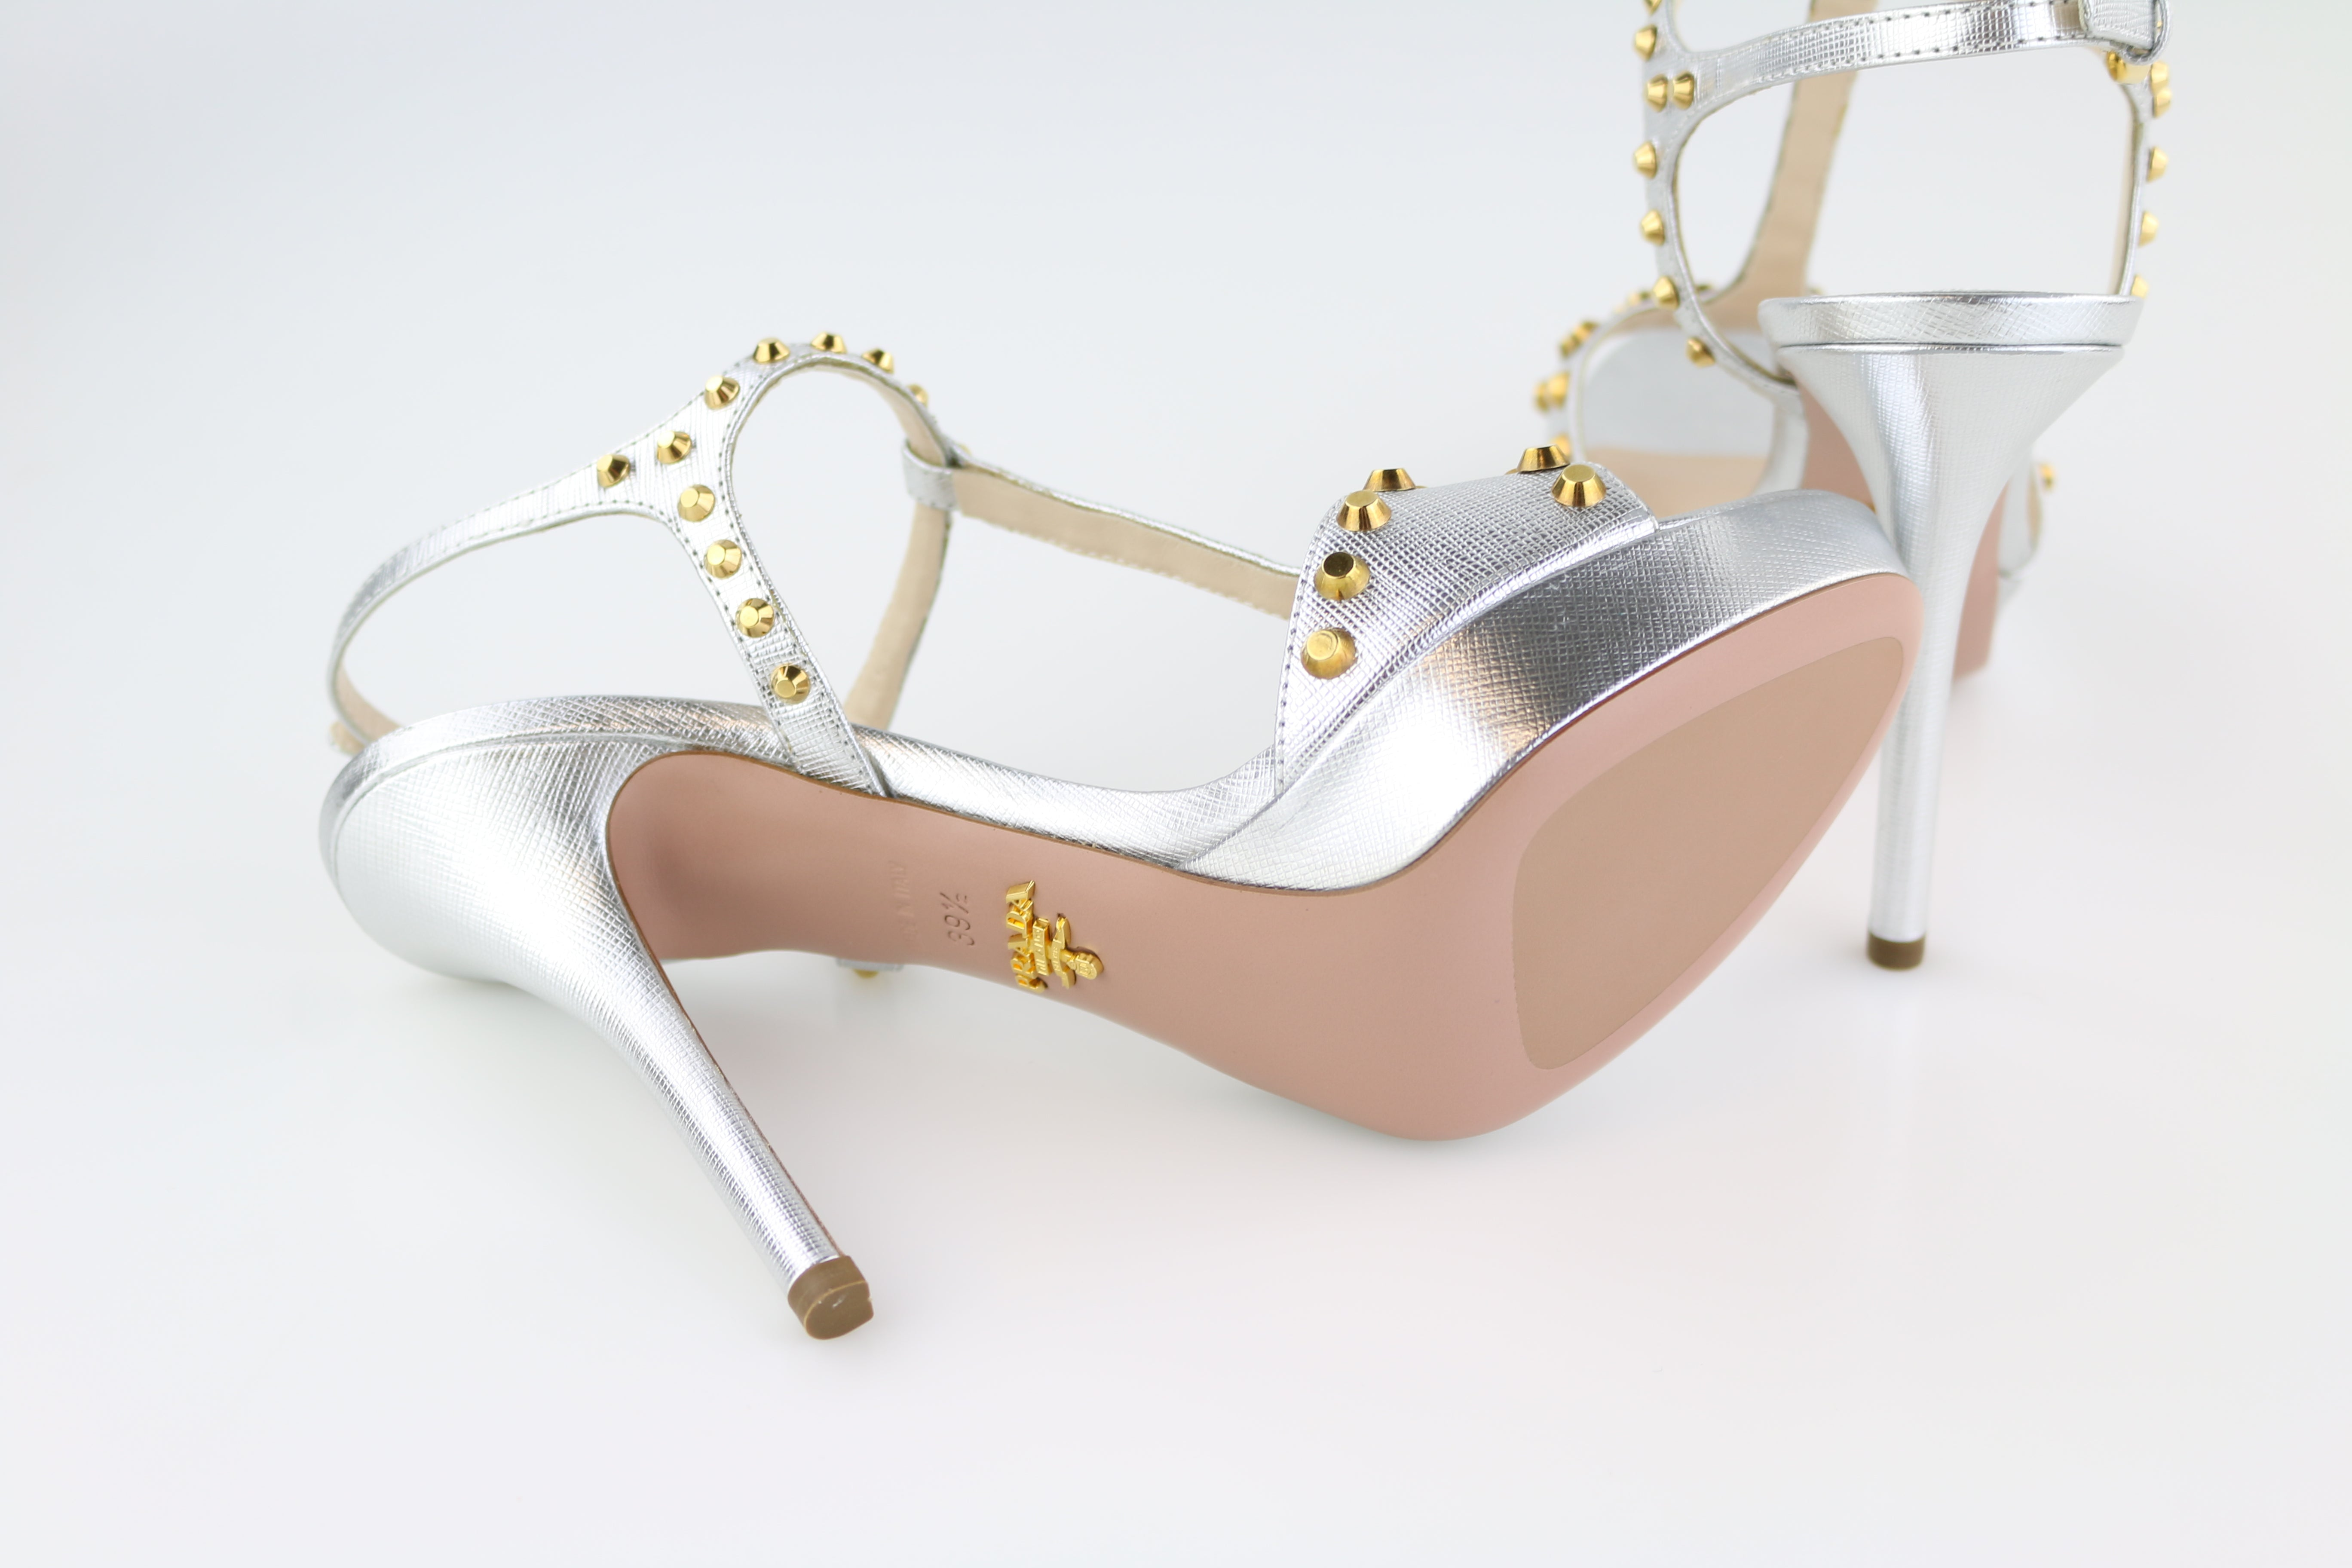 Silver/Gold Calzature Donna Sandals